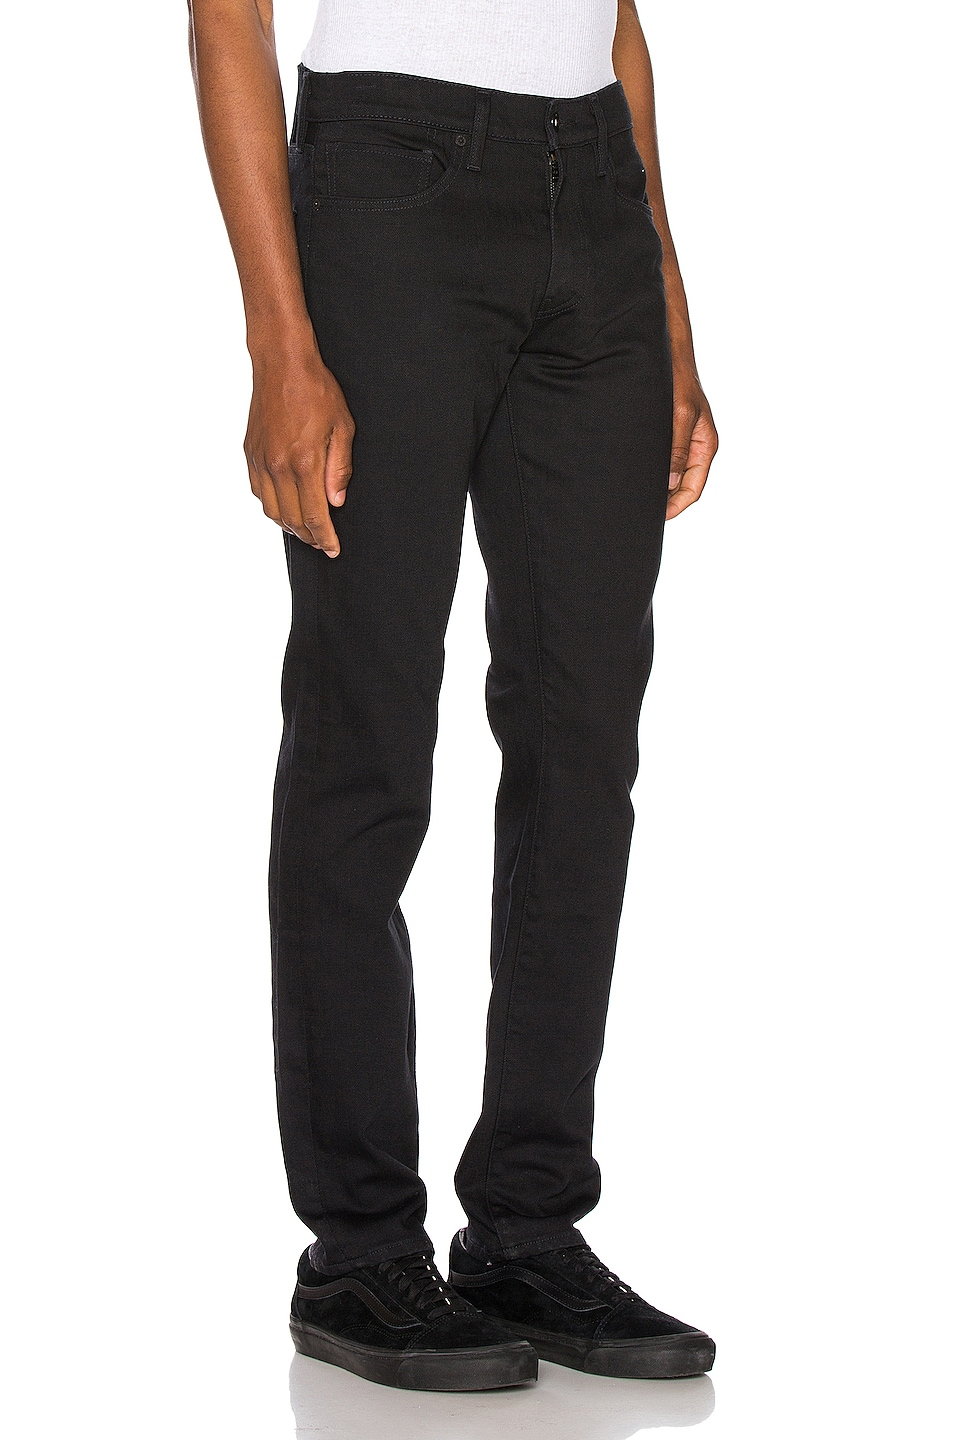 Image 2 of LEVI'S: Made & Crafted 511 Slim Jean in Black Rinse